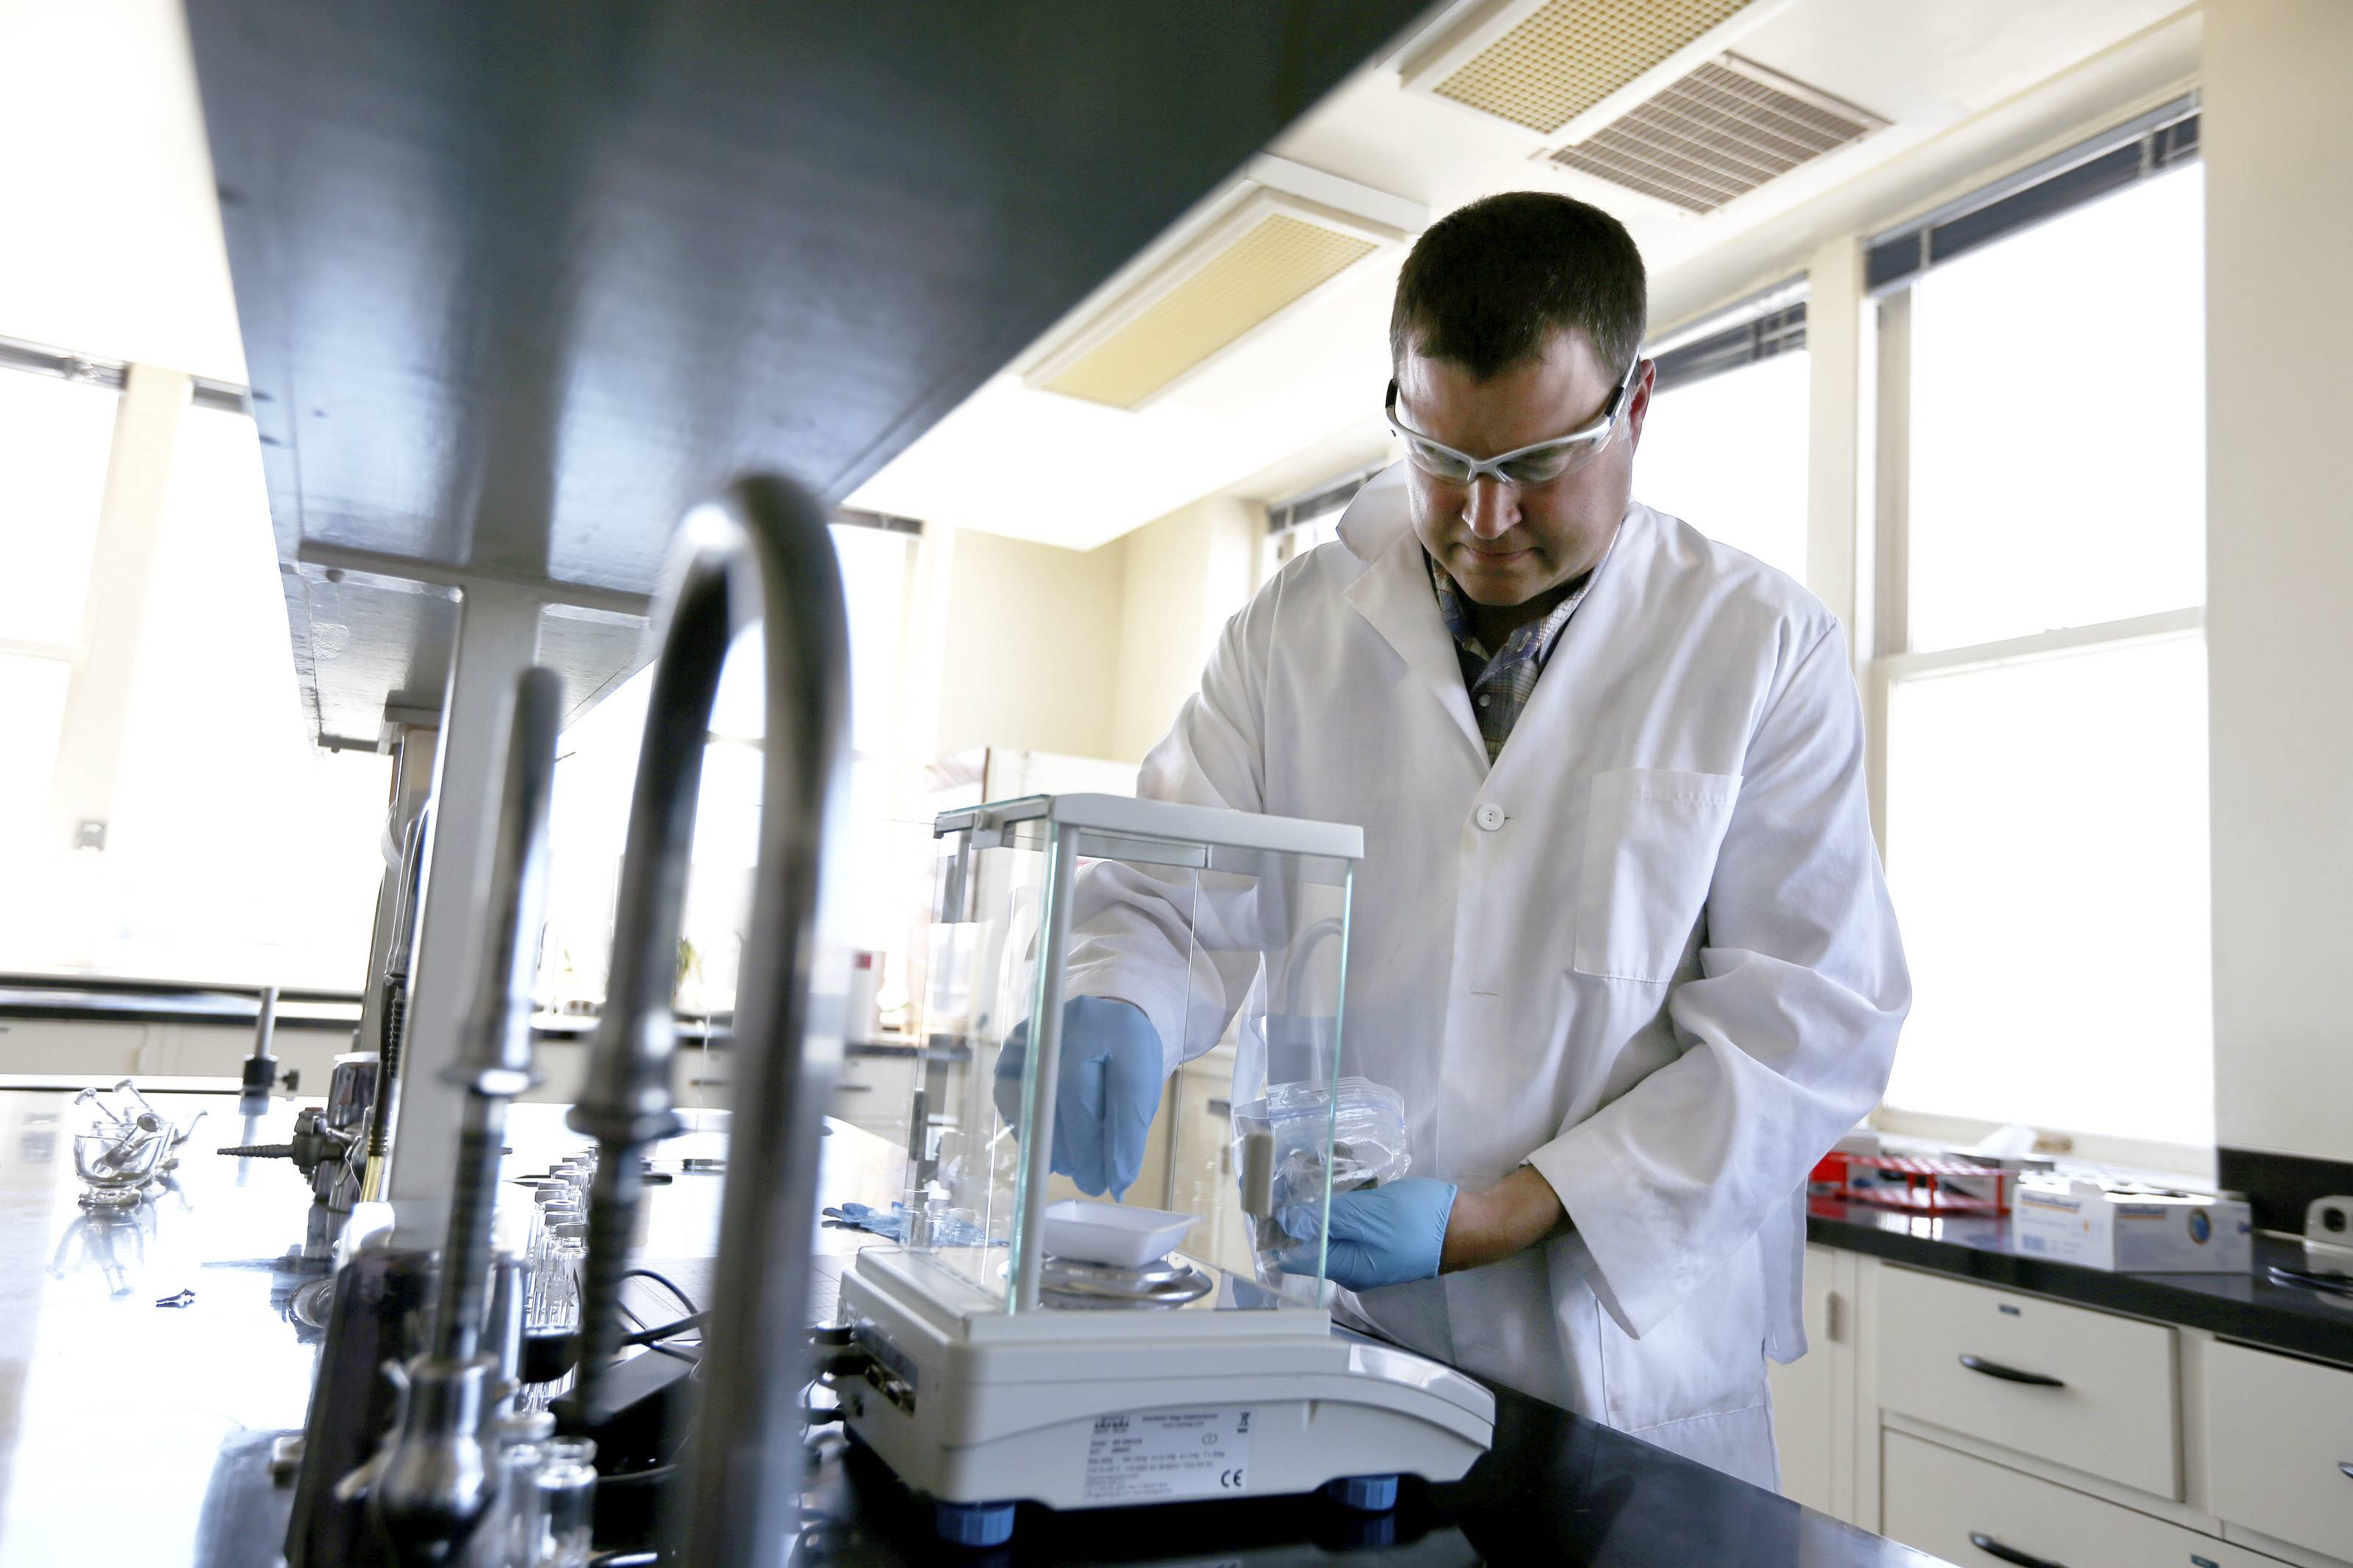 Randy Oliver, the chief scientist for Analytical 360, weighs out a sample of marijuana at its new cannabis analysis laboratory, in Yakima, Wash.